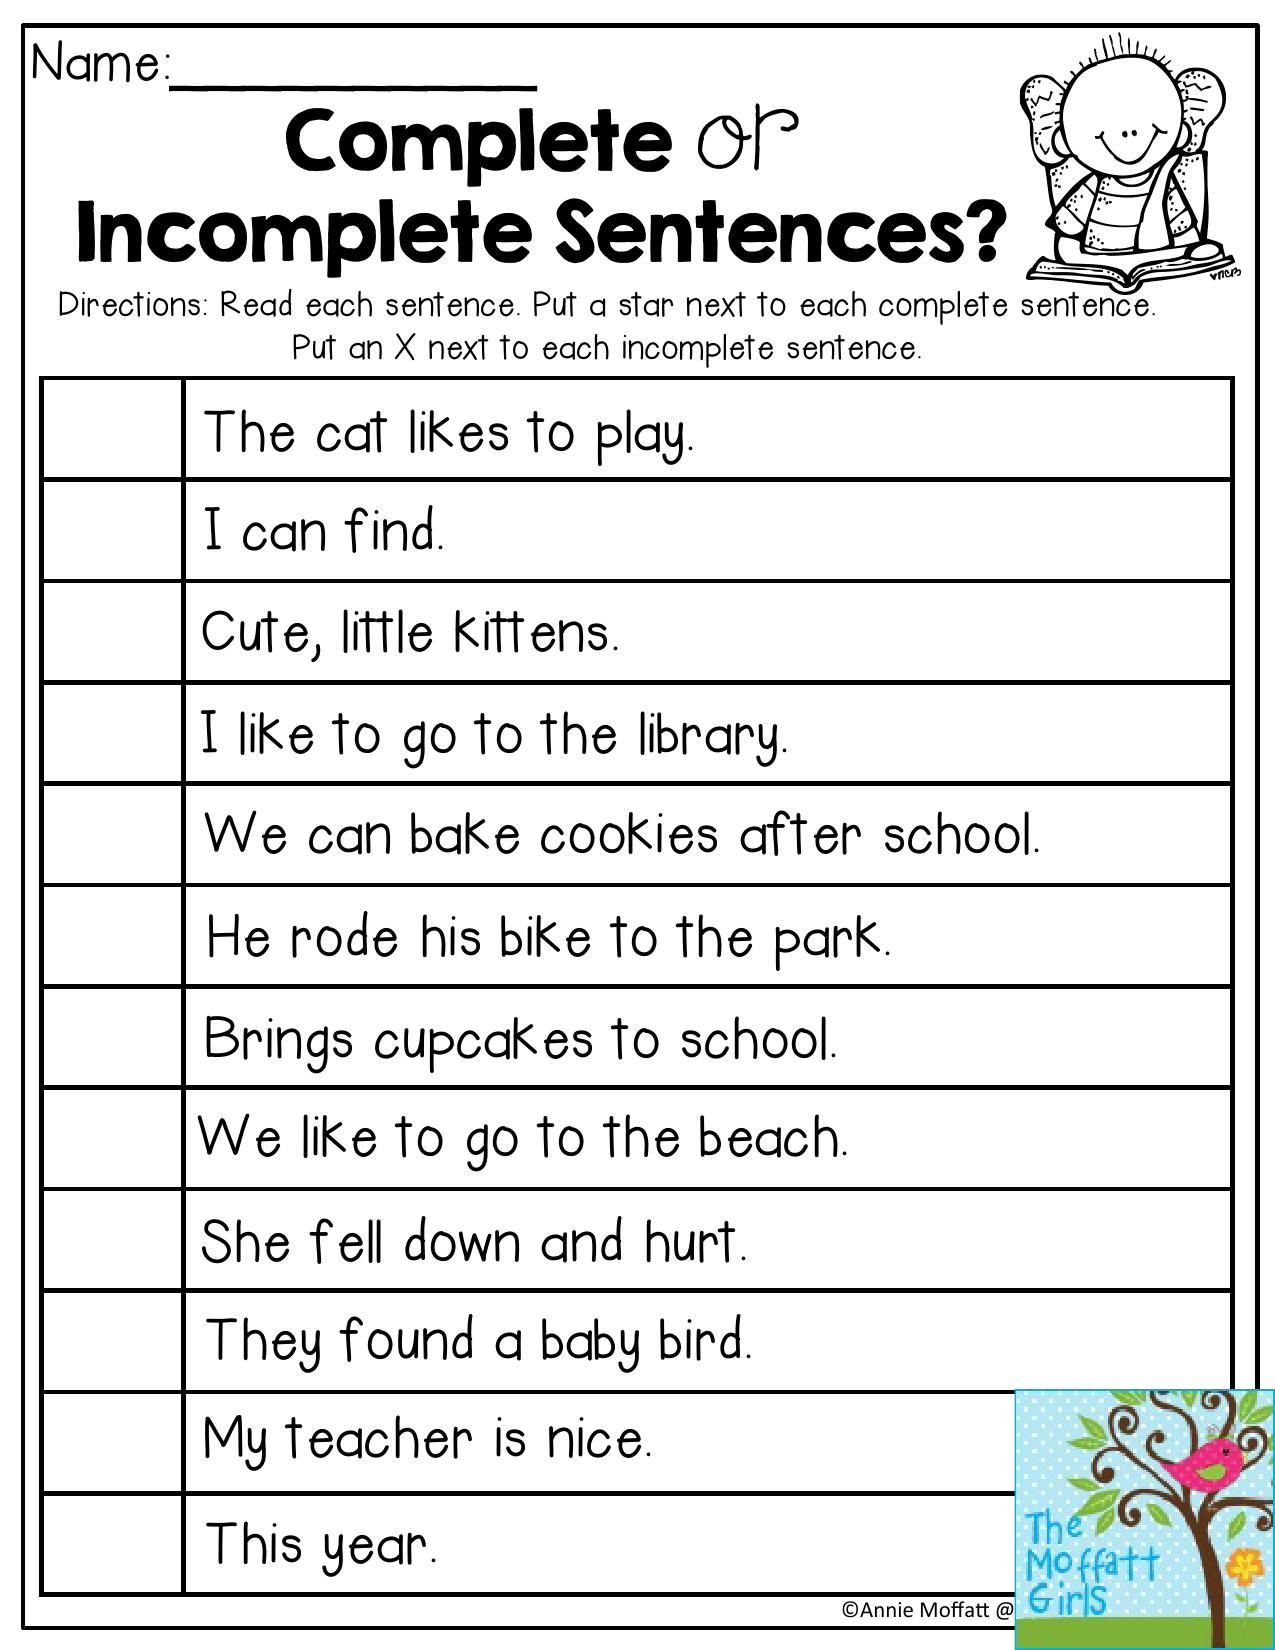 Complete Sentence Worksheets 1st Grade Plete or In Plete Sentences Read Each Sentence and